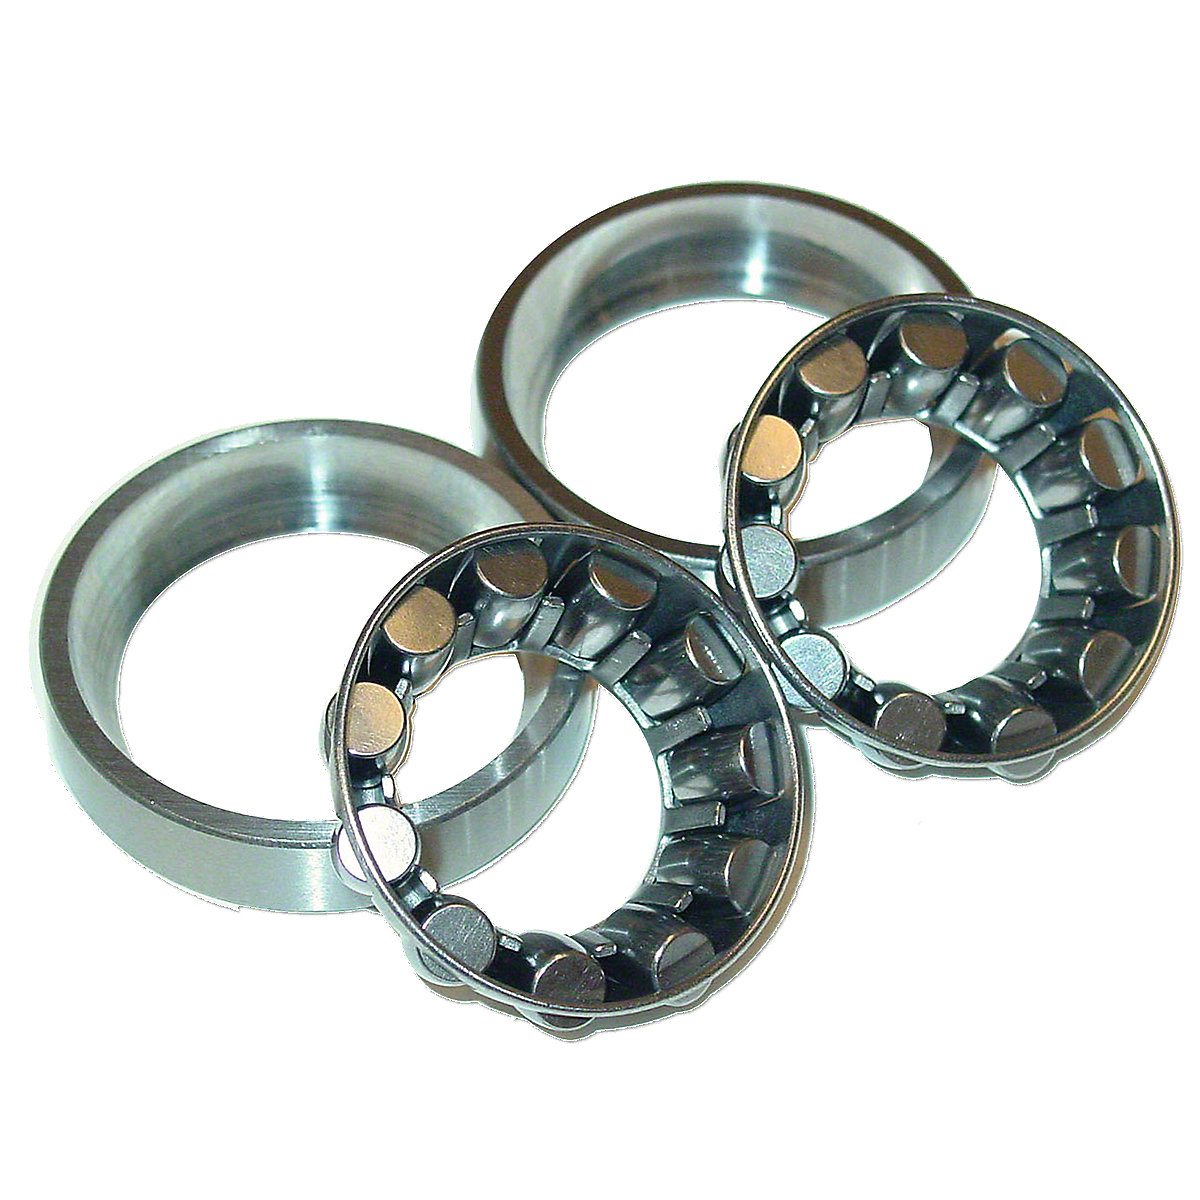 FDS387 Steering Ball Nut Shaft Bearing Kit